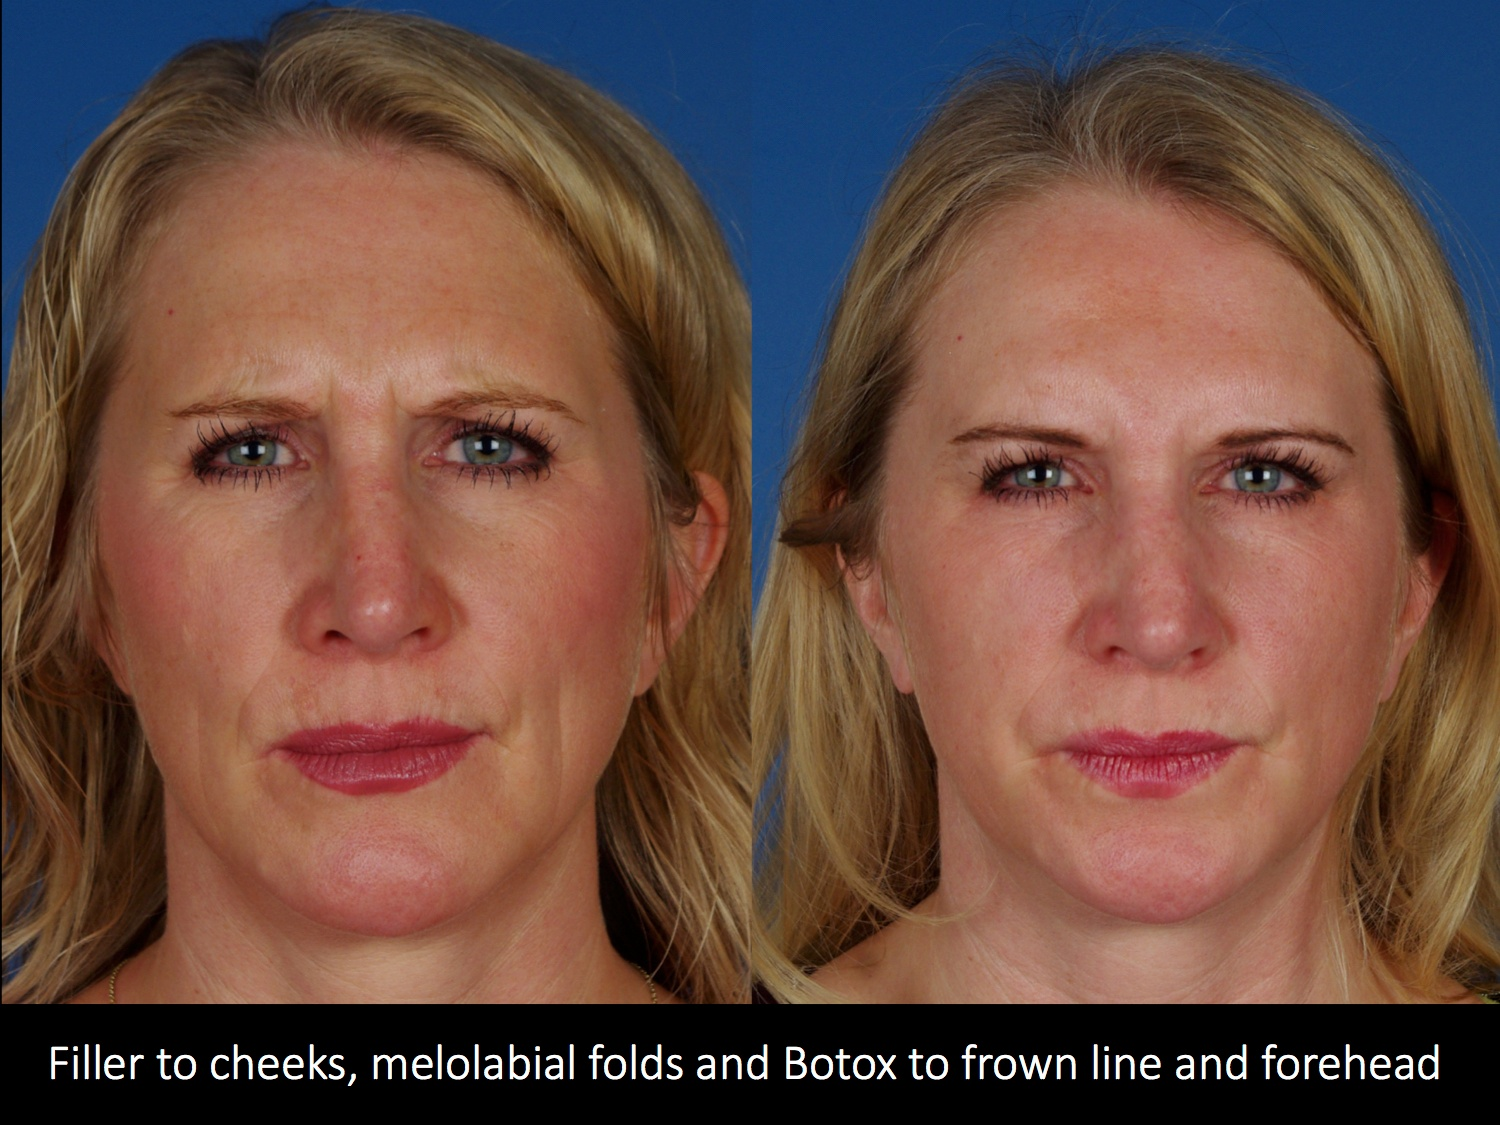 Filler to malars, MLF and botox to frown line and forehead1 copy